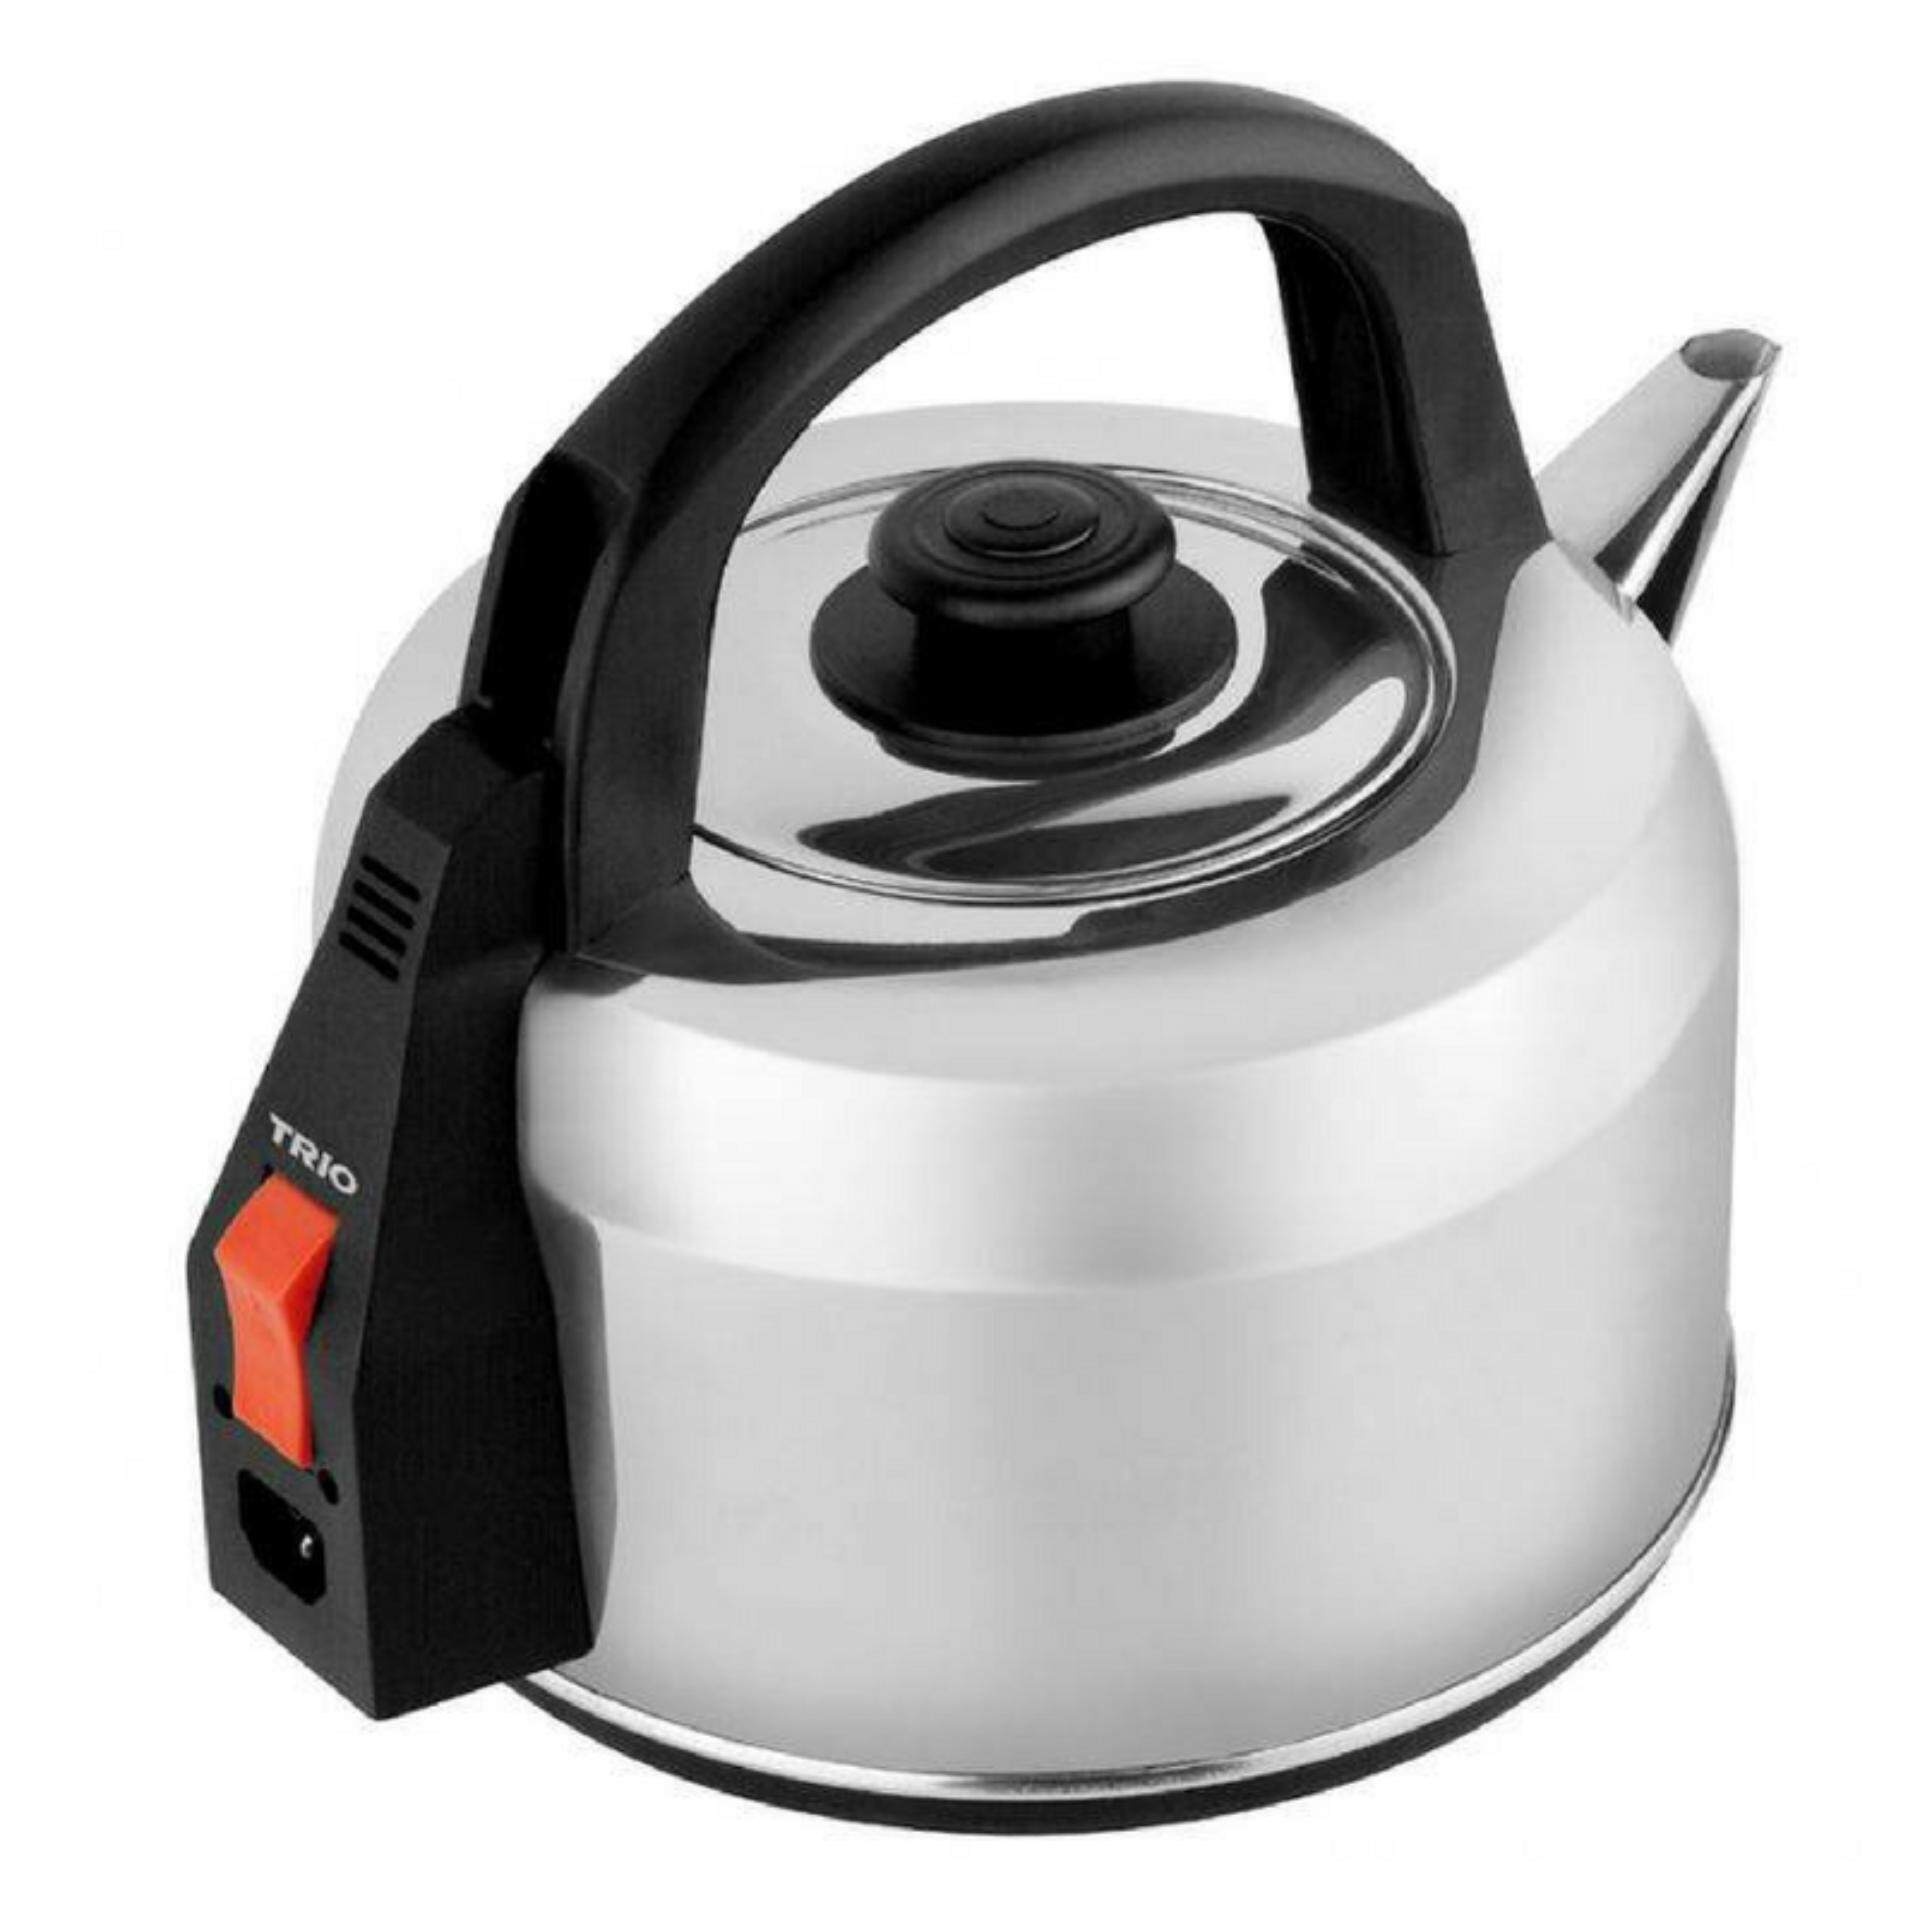 Trio TK-47 Stainless Steel Kettle 4.7L (Silver)